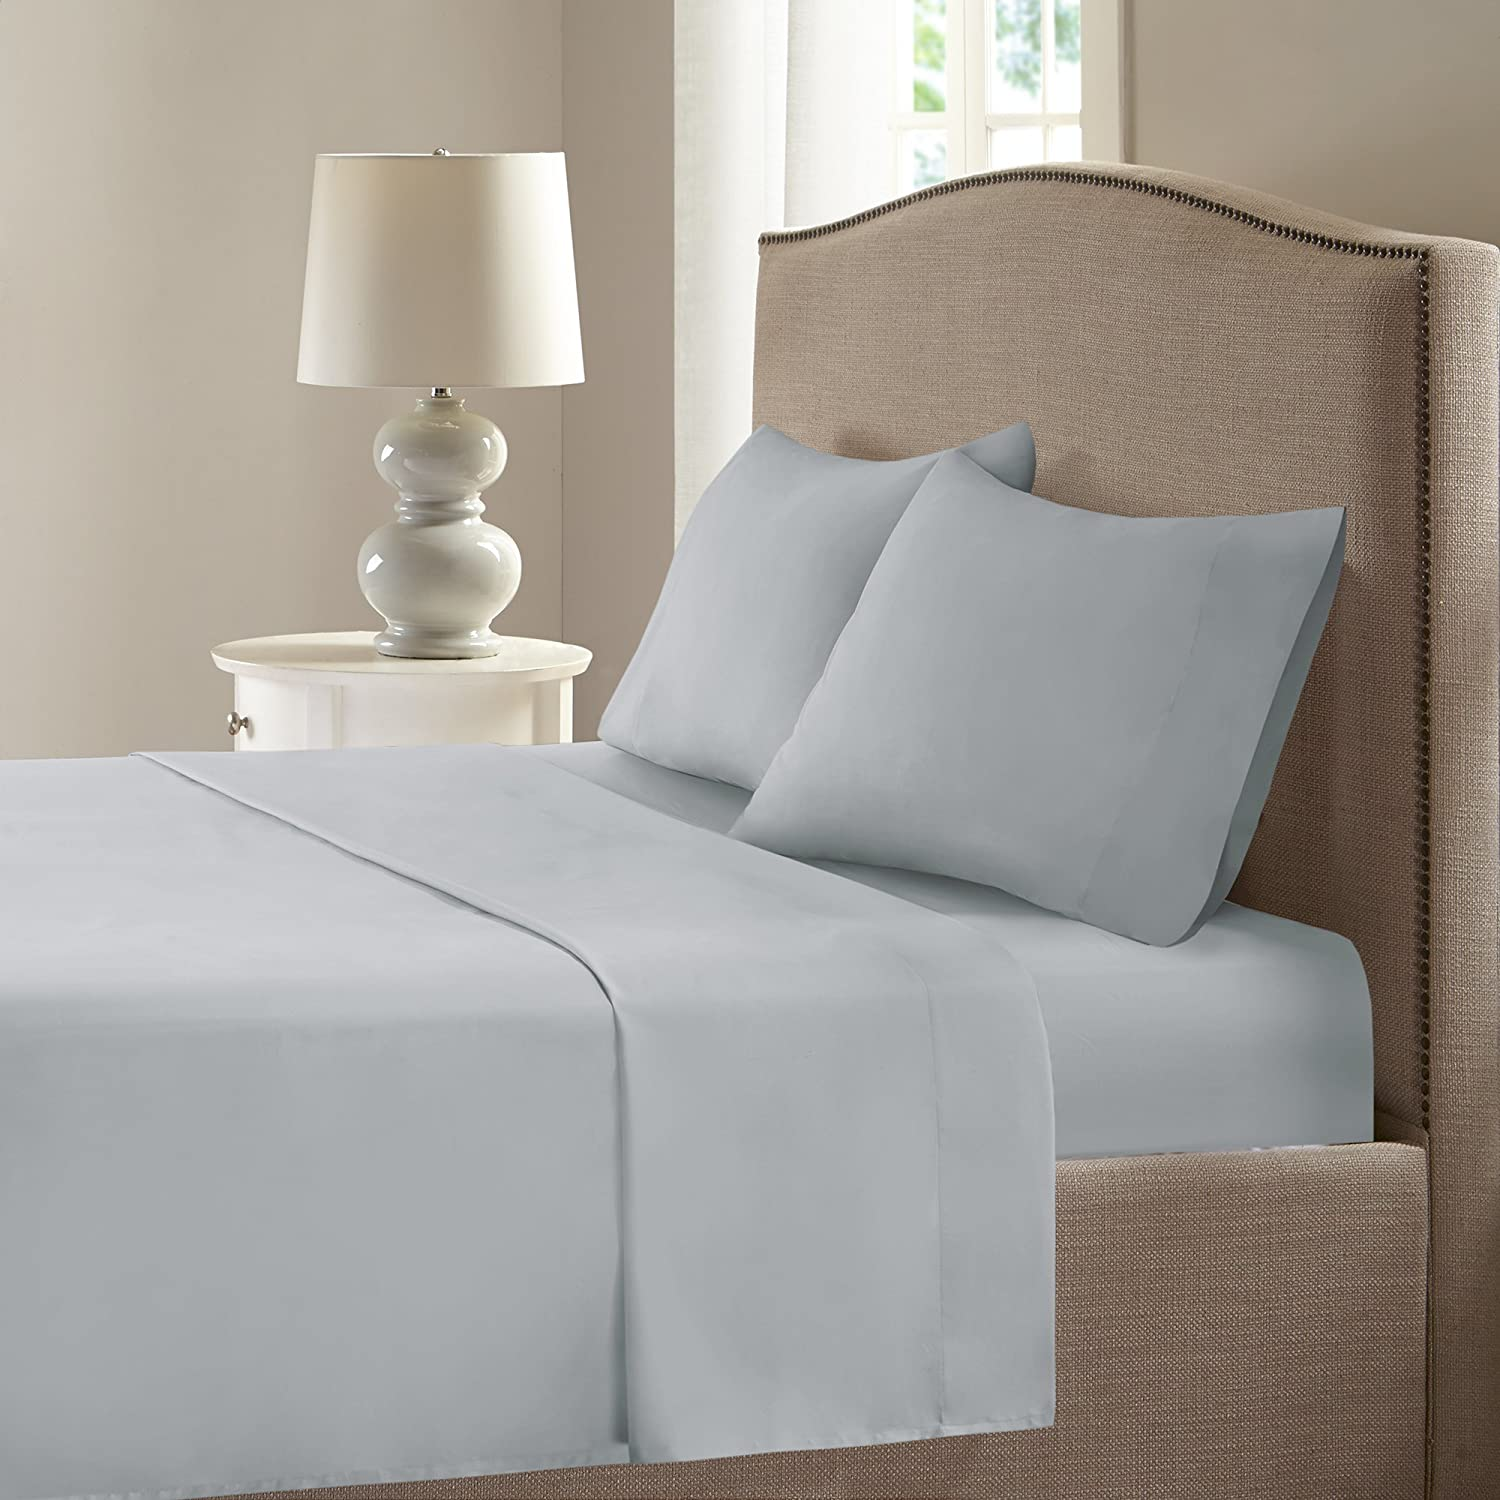 Comfort Spaces Coolmax Moisture Wicking Bed Cooling Sheets for Night Sweats, King, Grey